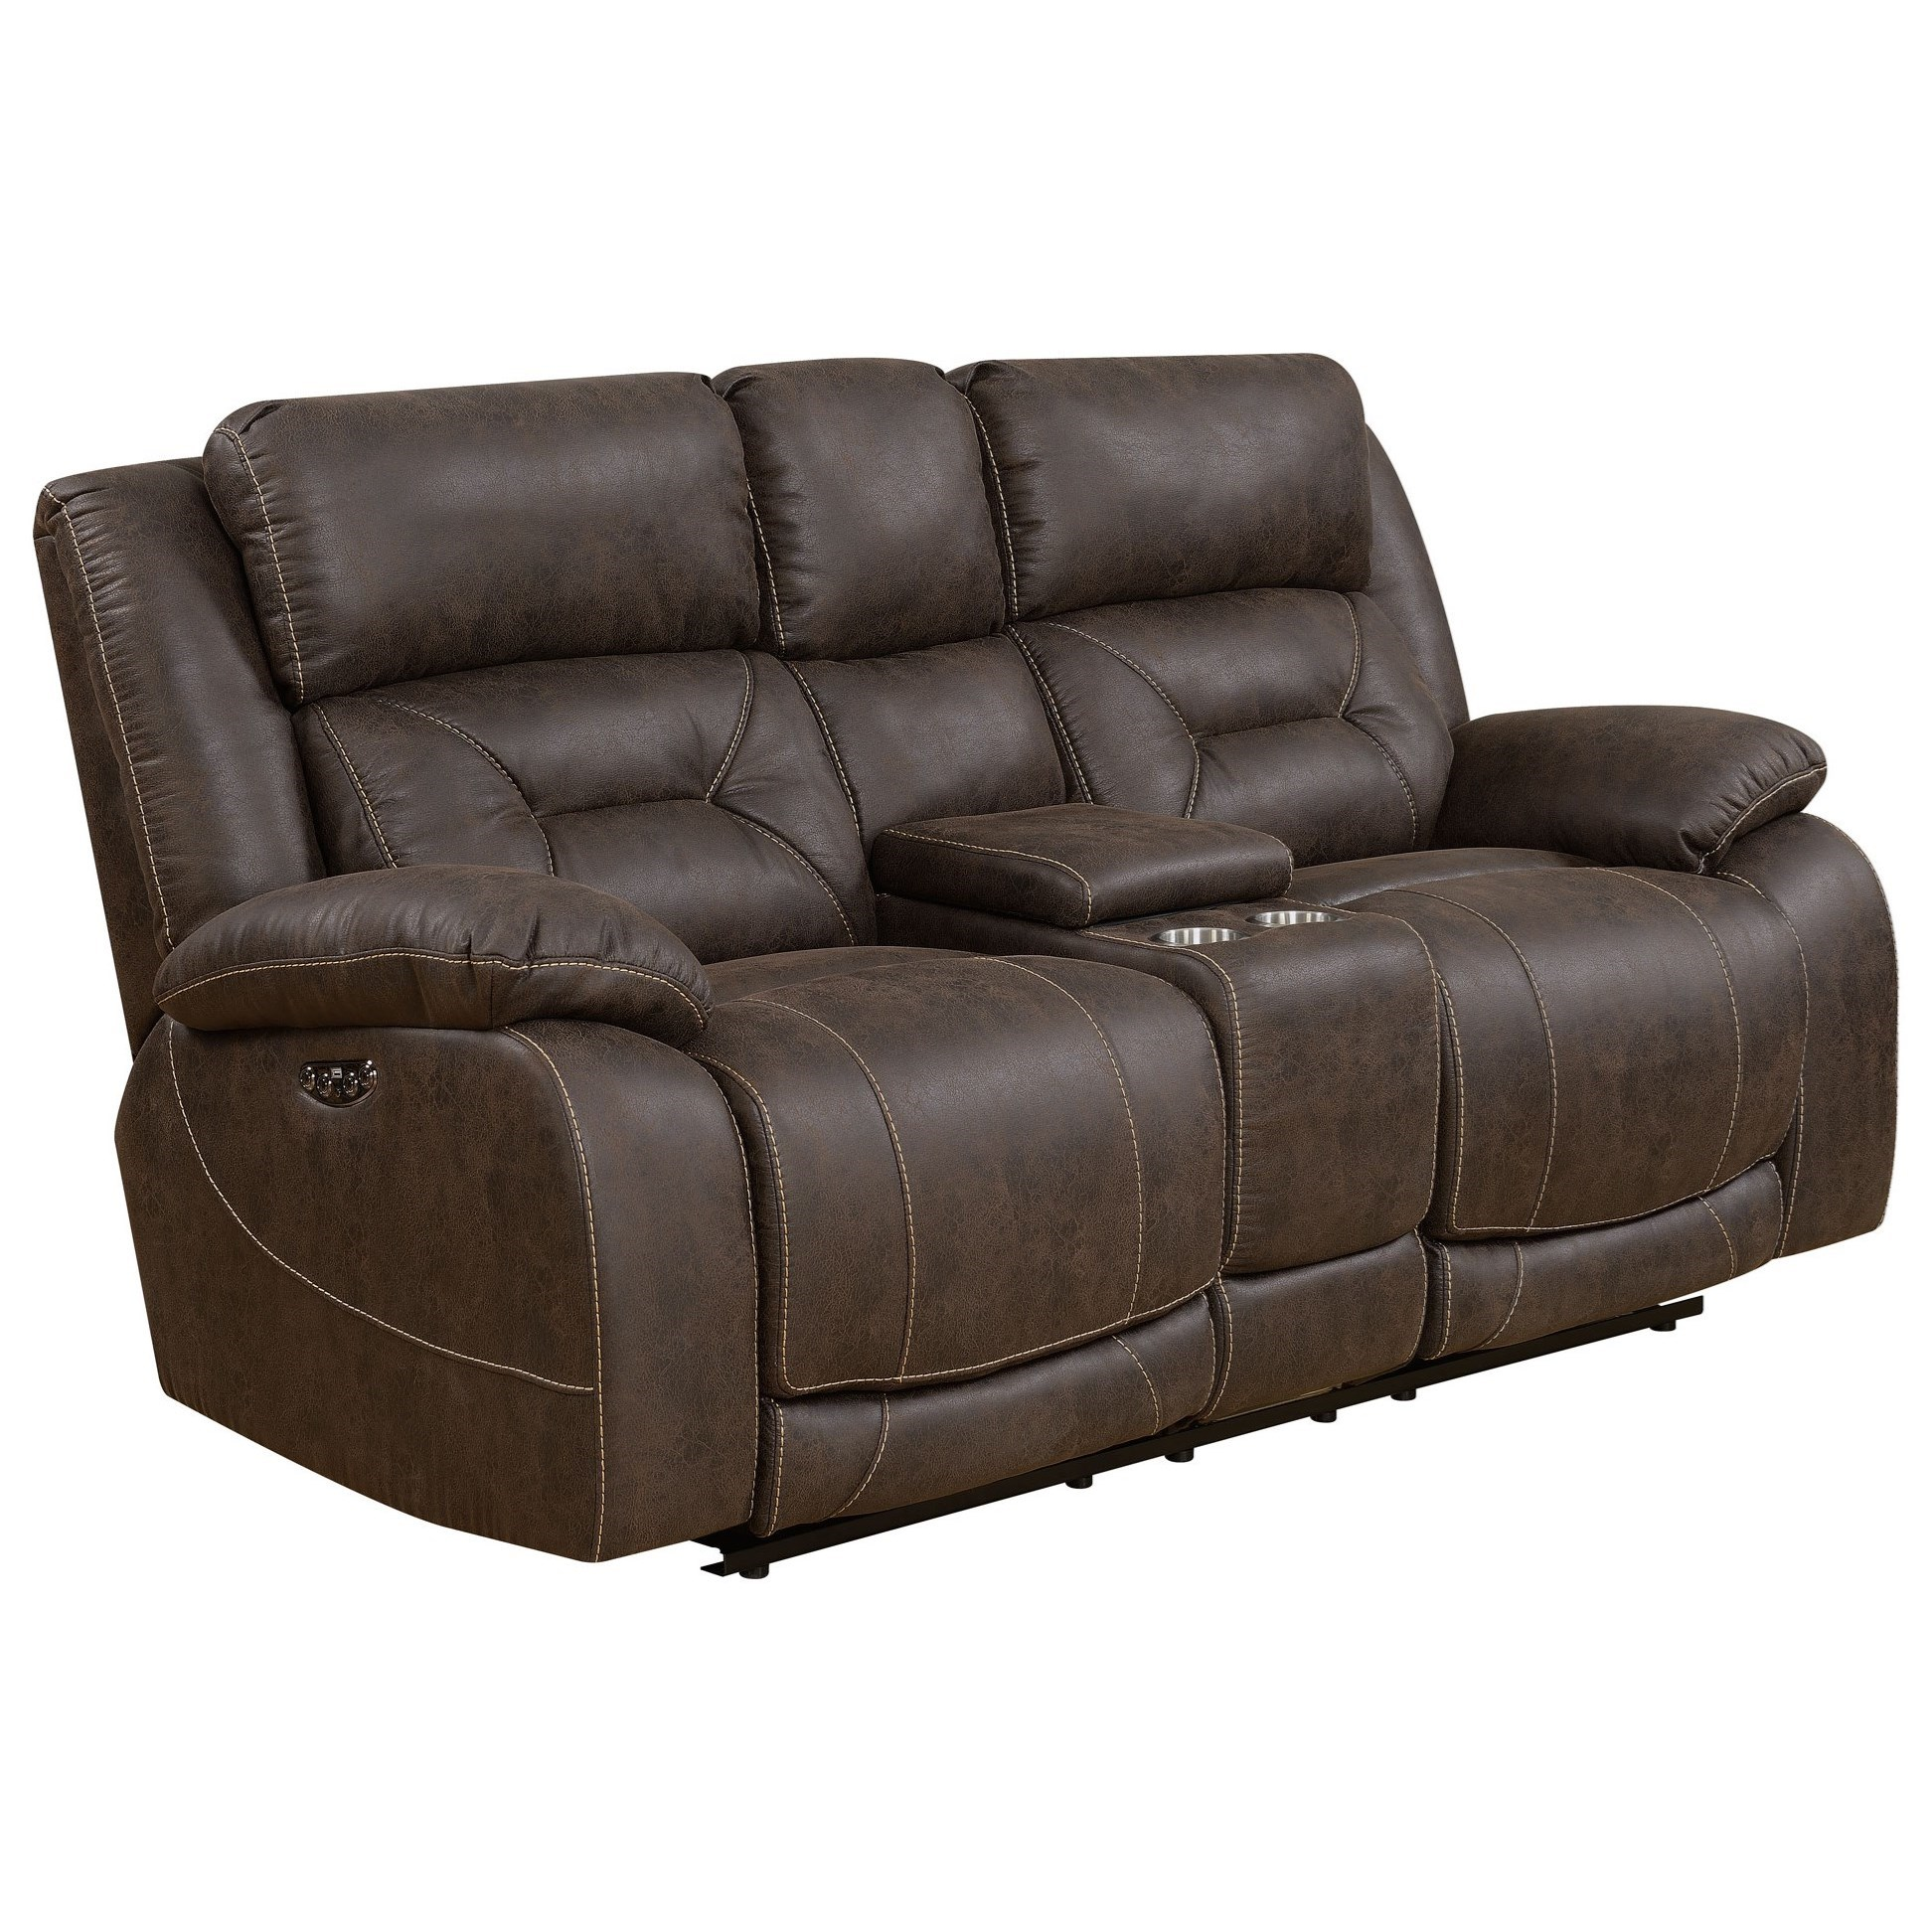 Aria Power Reclining Loveseat by Steve Silver at Nassau Furniture and Mattress